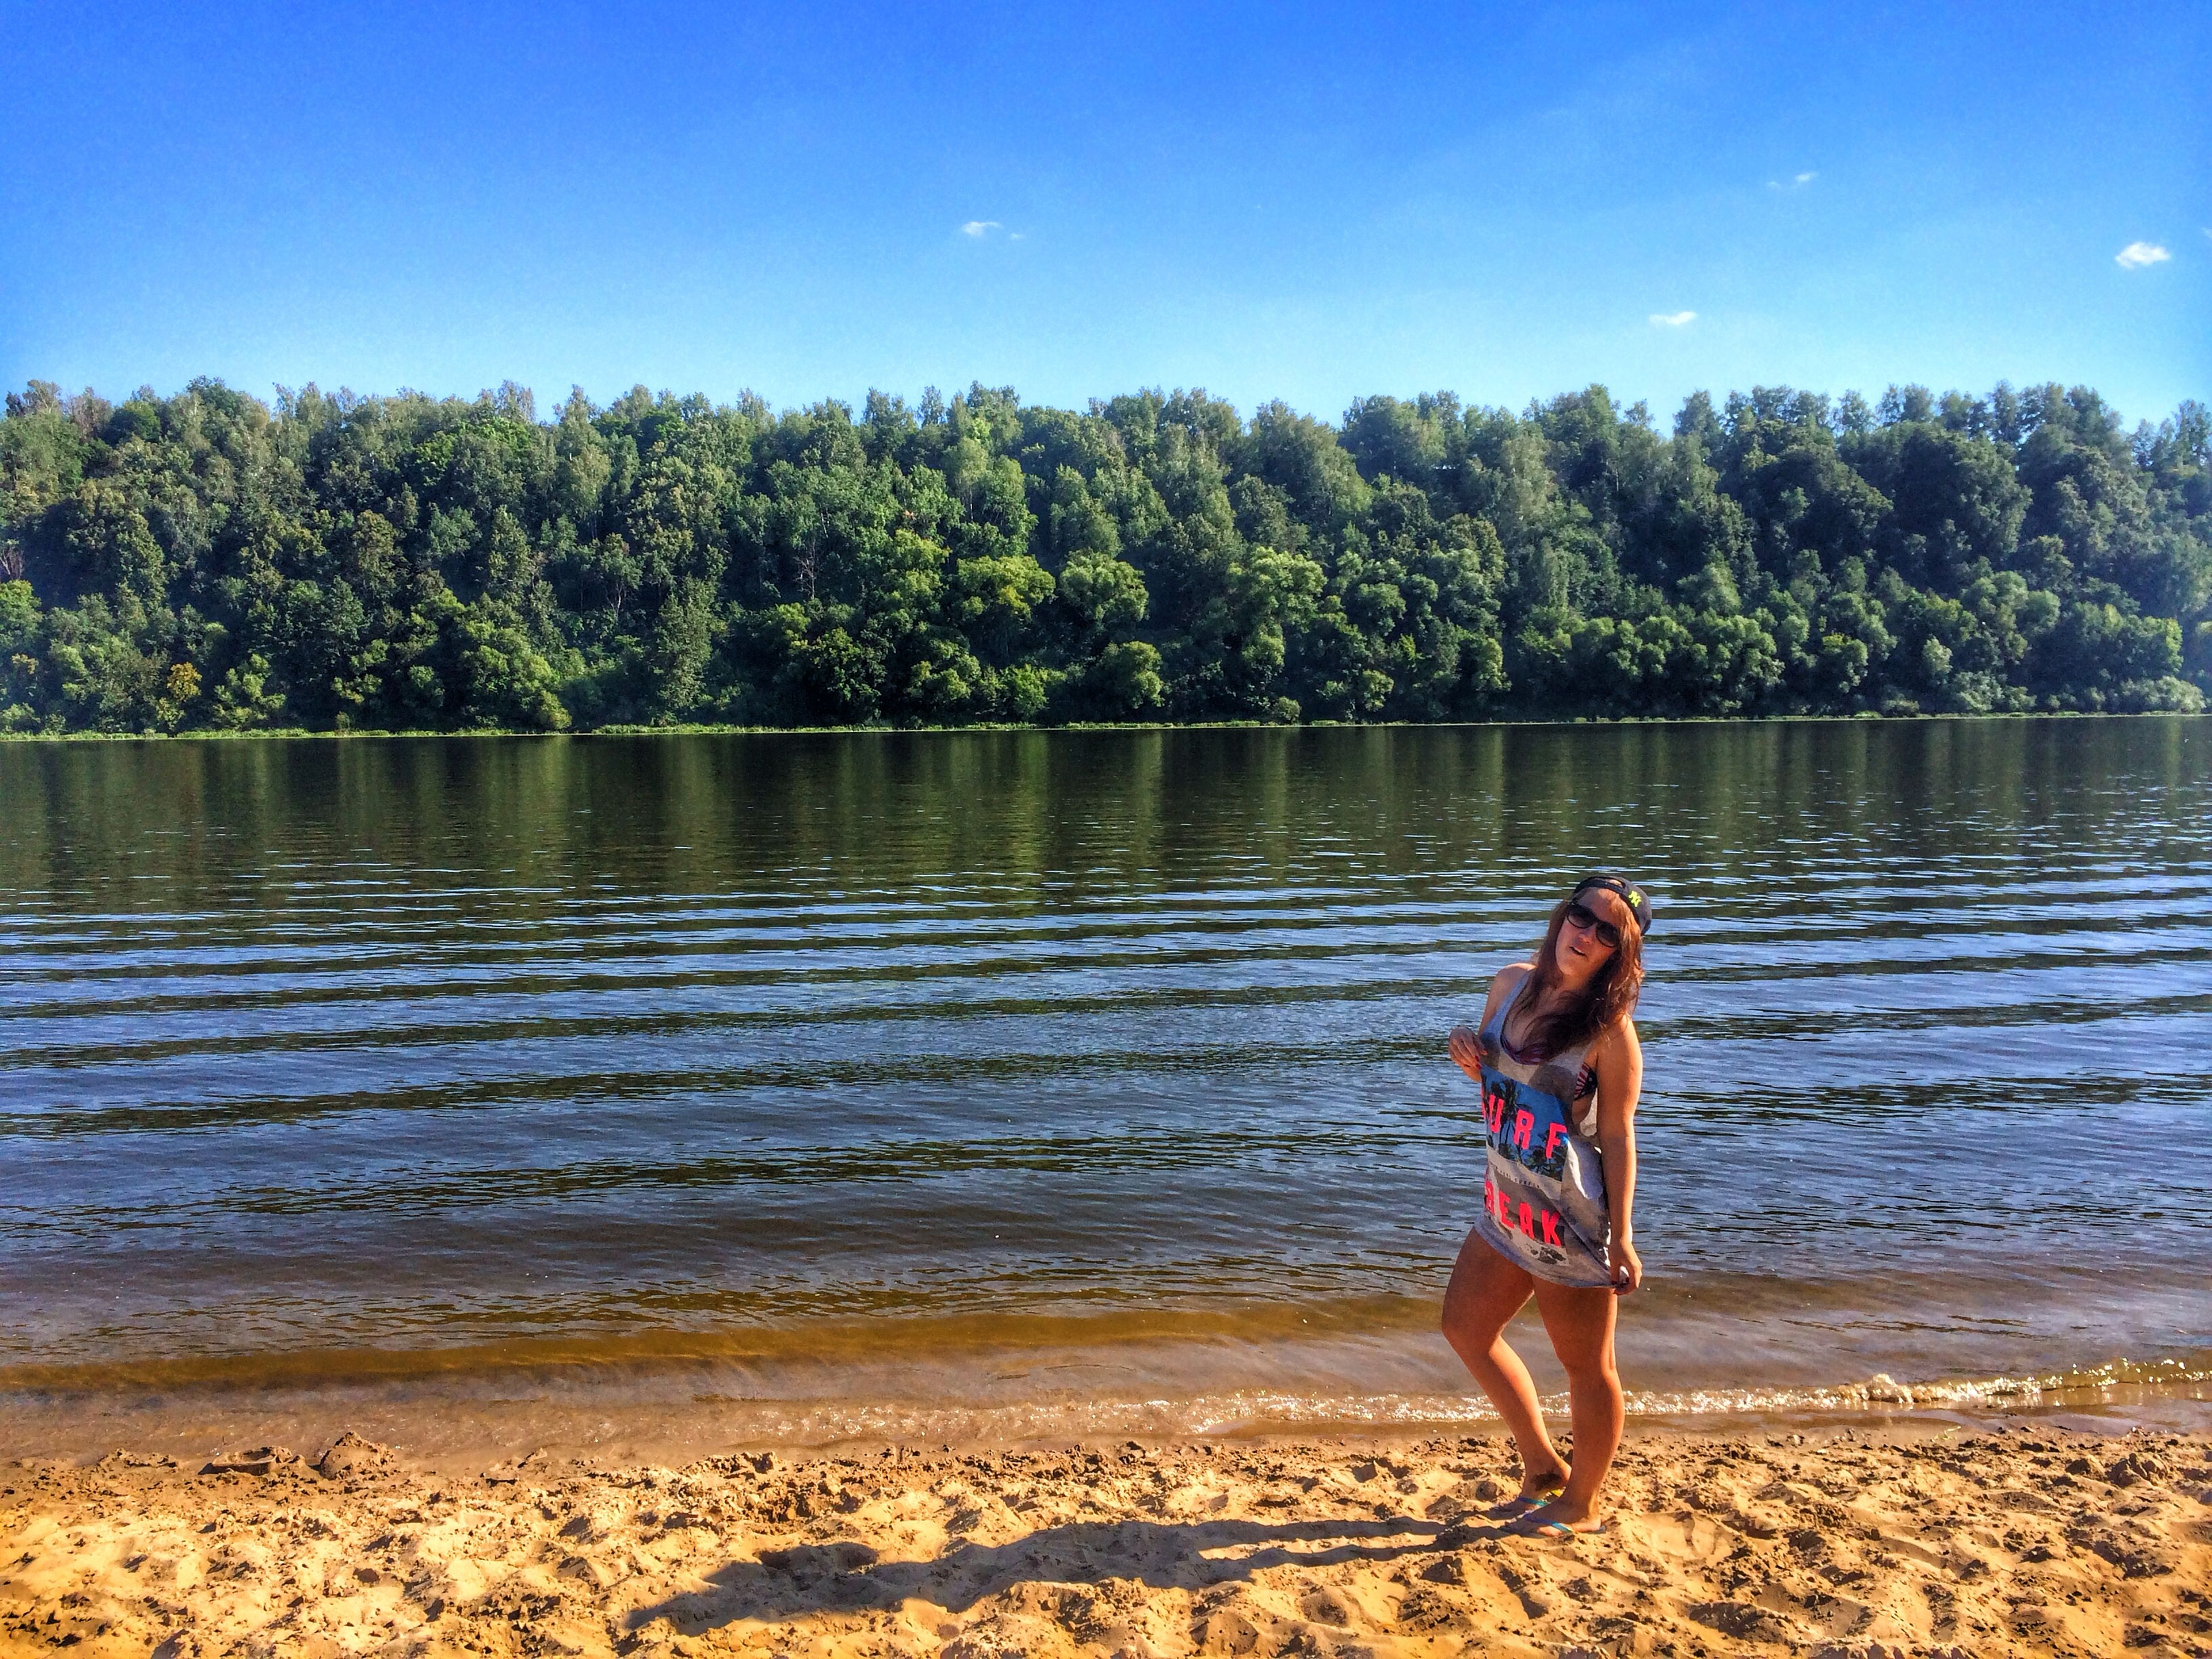 water, tree, lifestyles, leisure activity, casual clothing, full length, tranquility, standing, rear view, nature, beauty in nature, lake, beach, tranquil scene, young adult, sunlight, day, shore